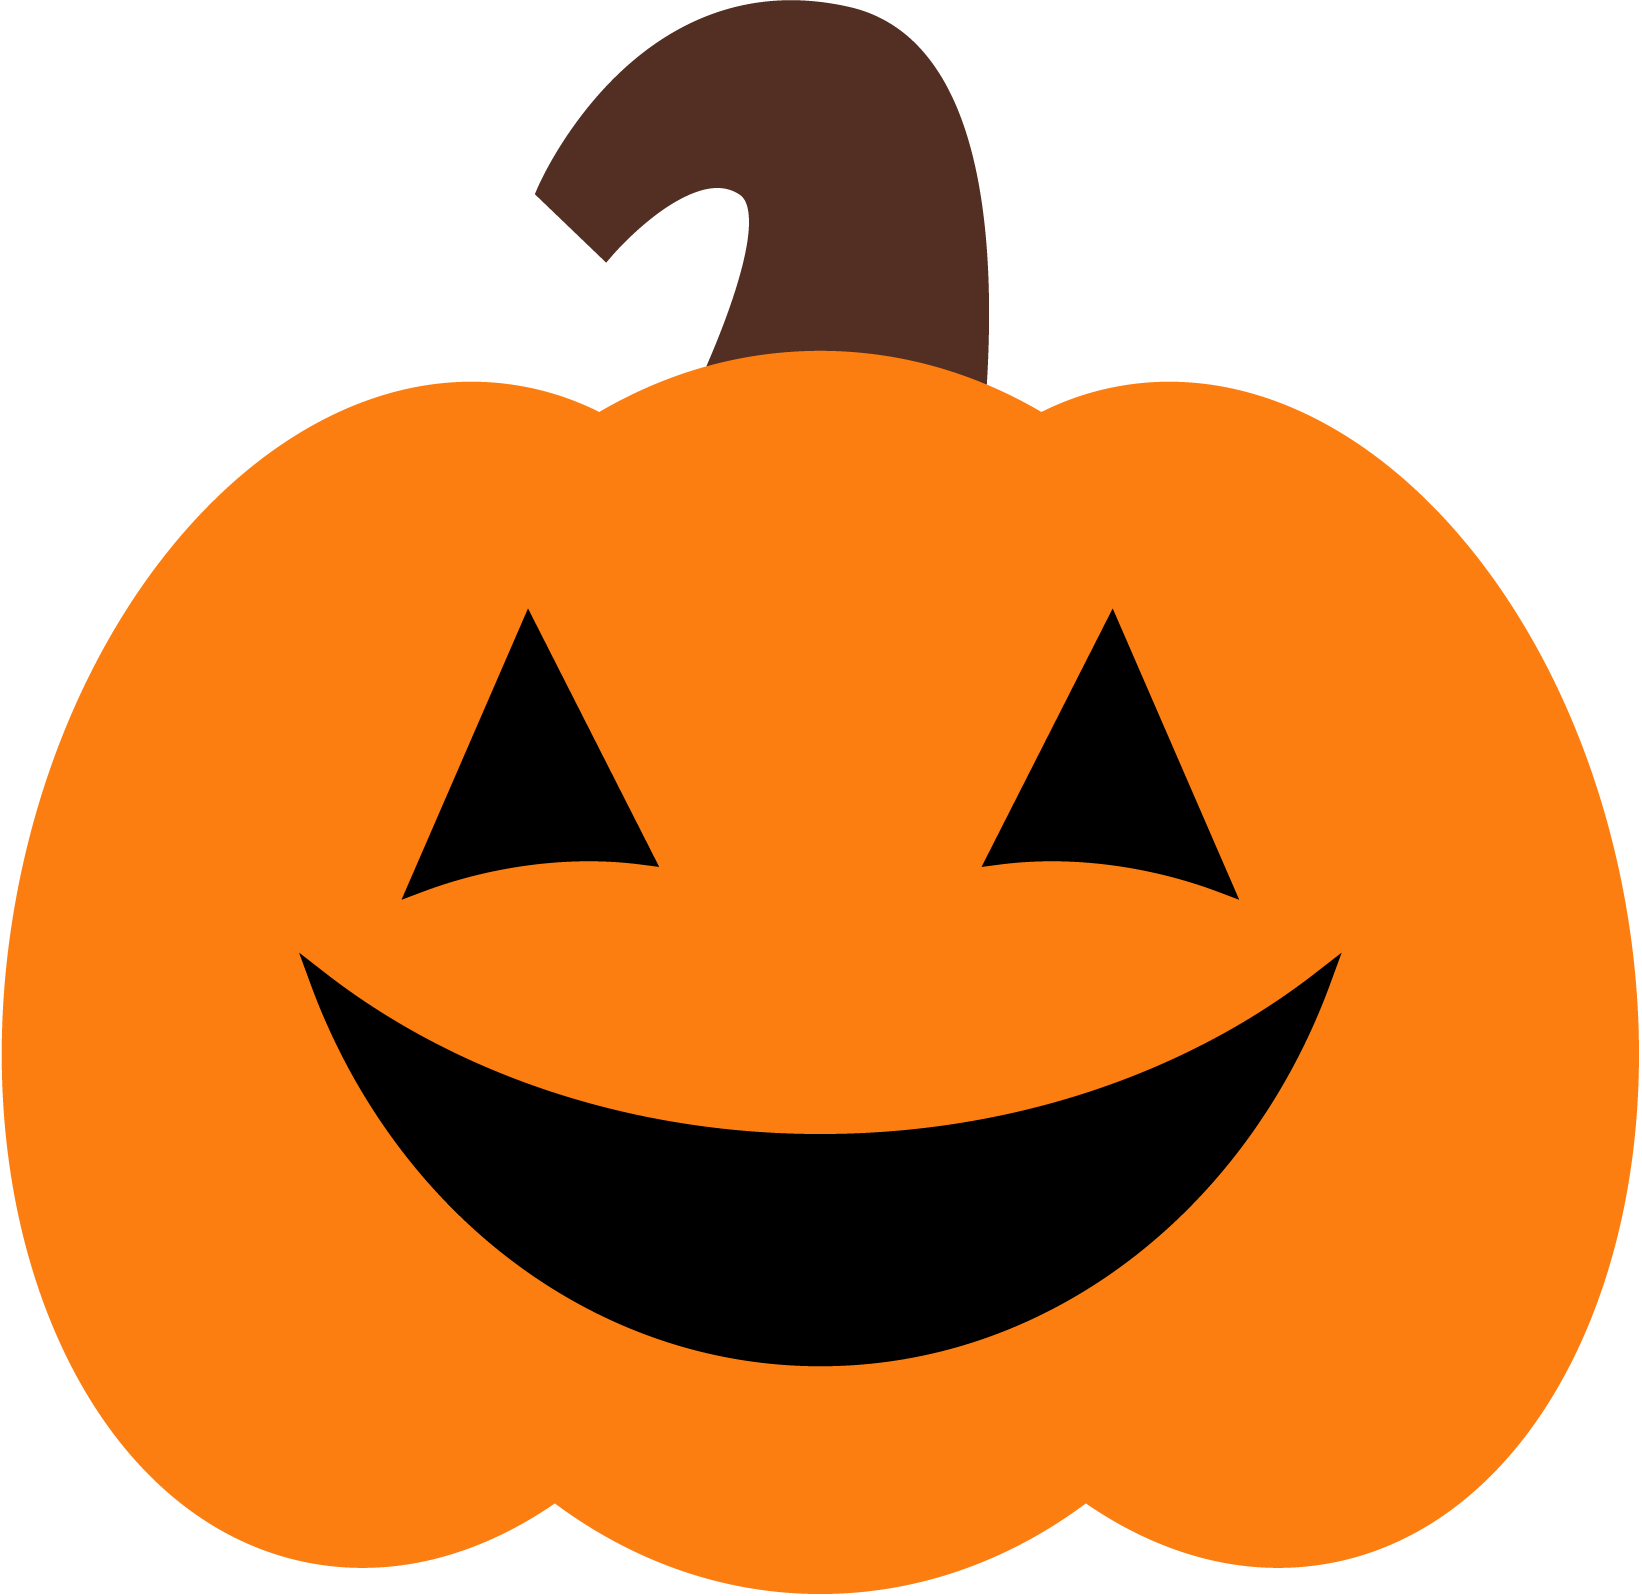 Halloween at getdrawings com. Cute pumpkin carving clipart